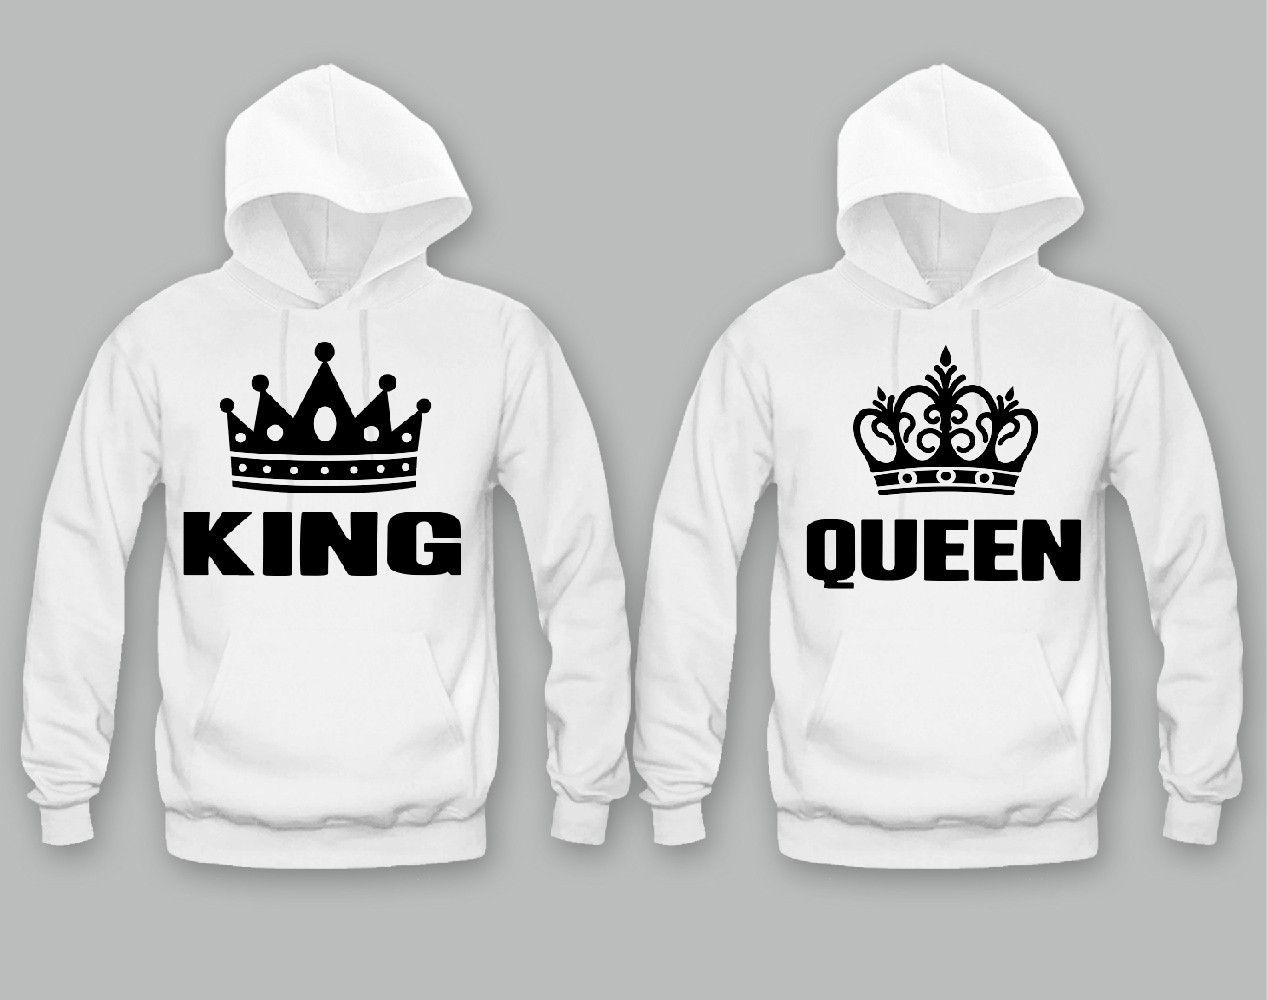 1f8762a2c3 King and Queen Unisex Couple Matching Hoodies in 2019 | <3 ...